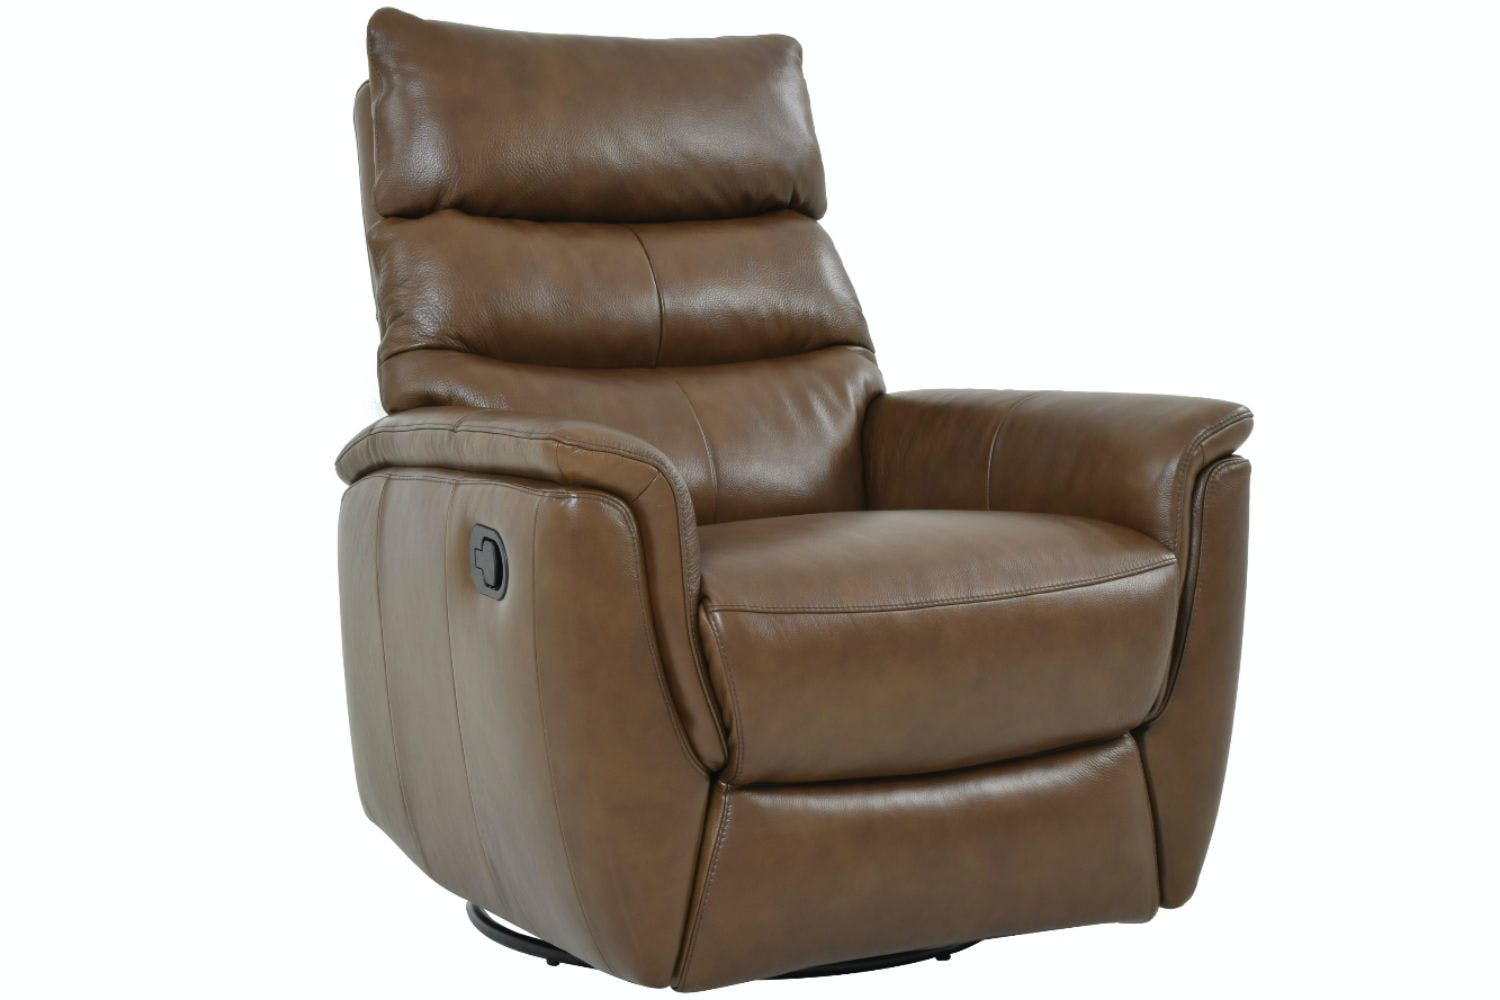 grey collection marco p decorators home recliners recliner leather